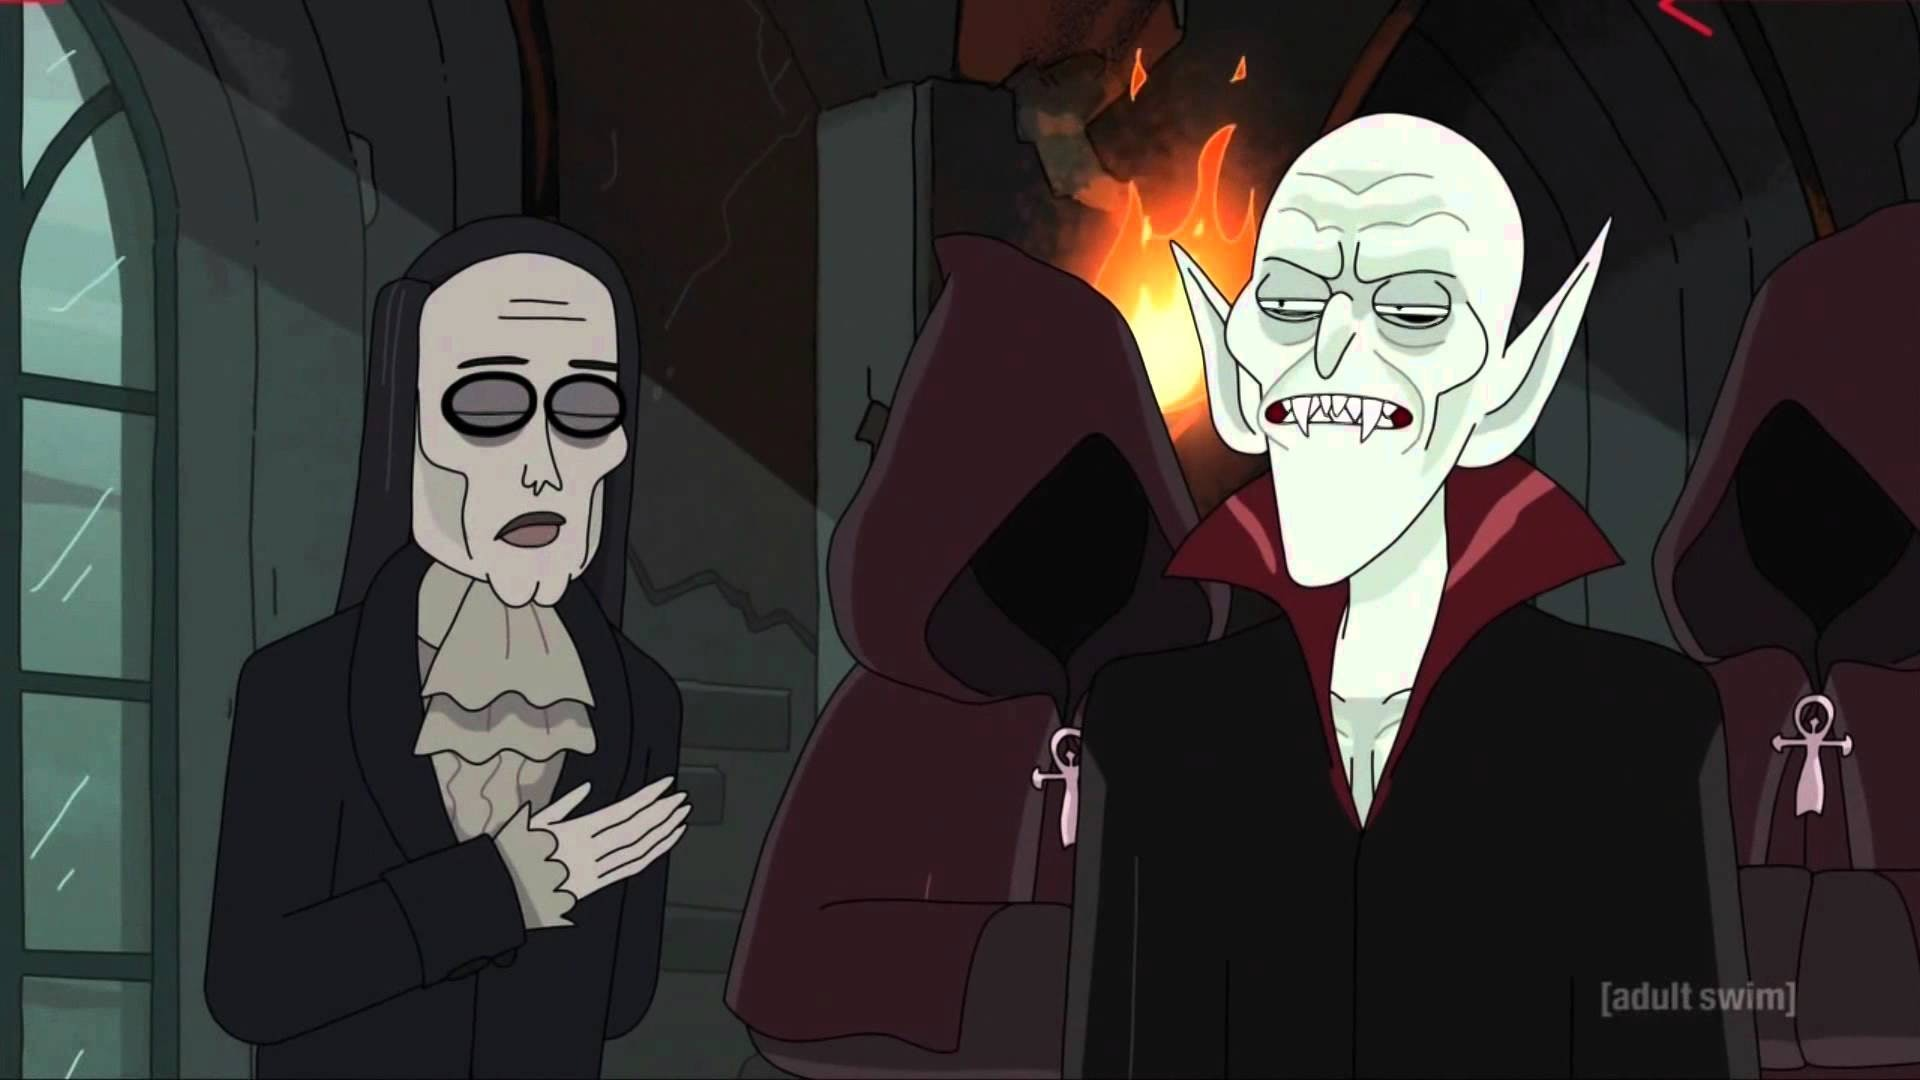 The original Nosferatu is king of the vampires in 'Rick and Morty.'